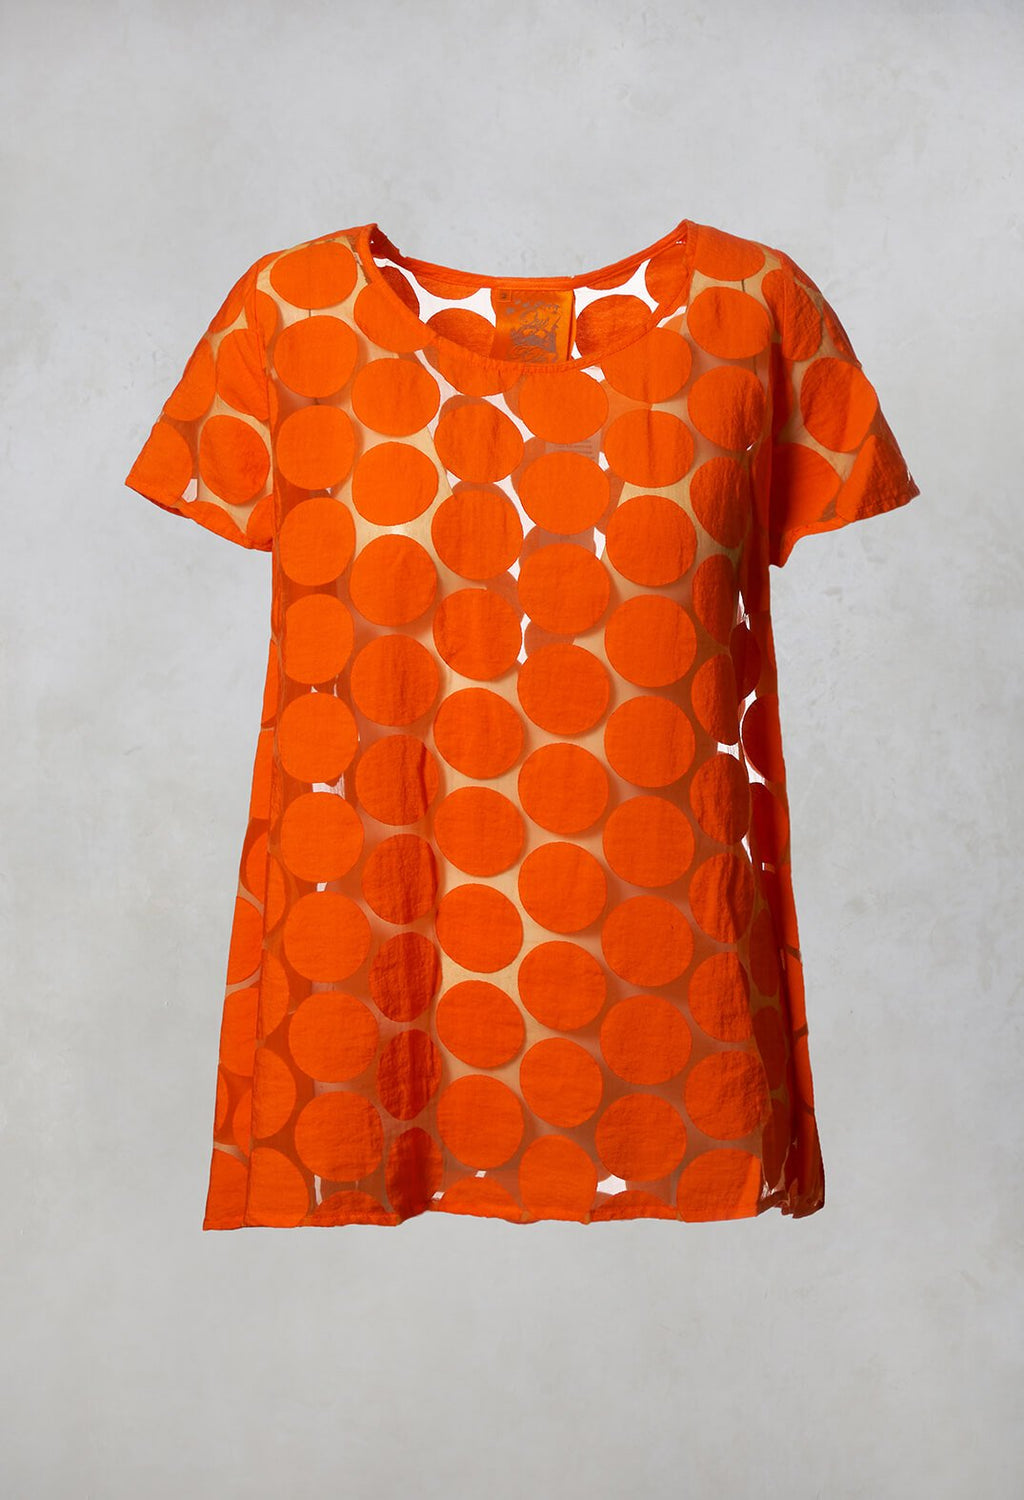 Spot Sheer Short Sleeve Tunic in Orange